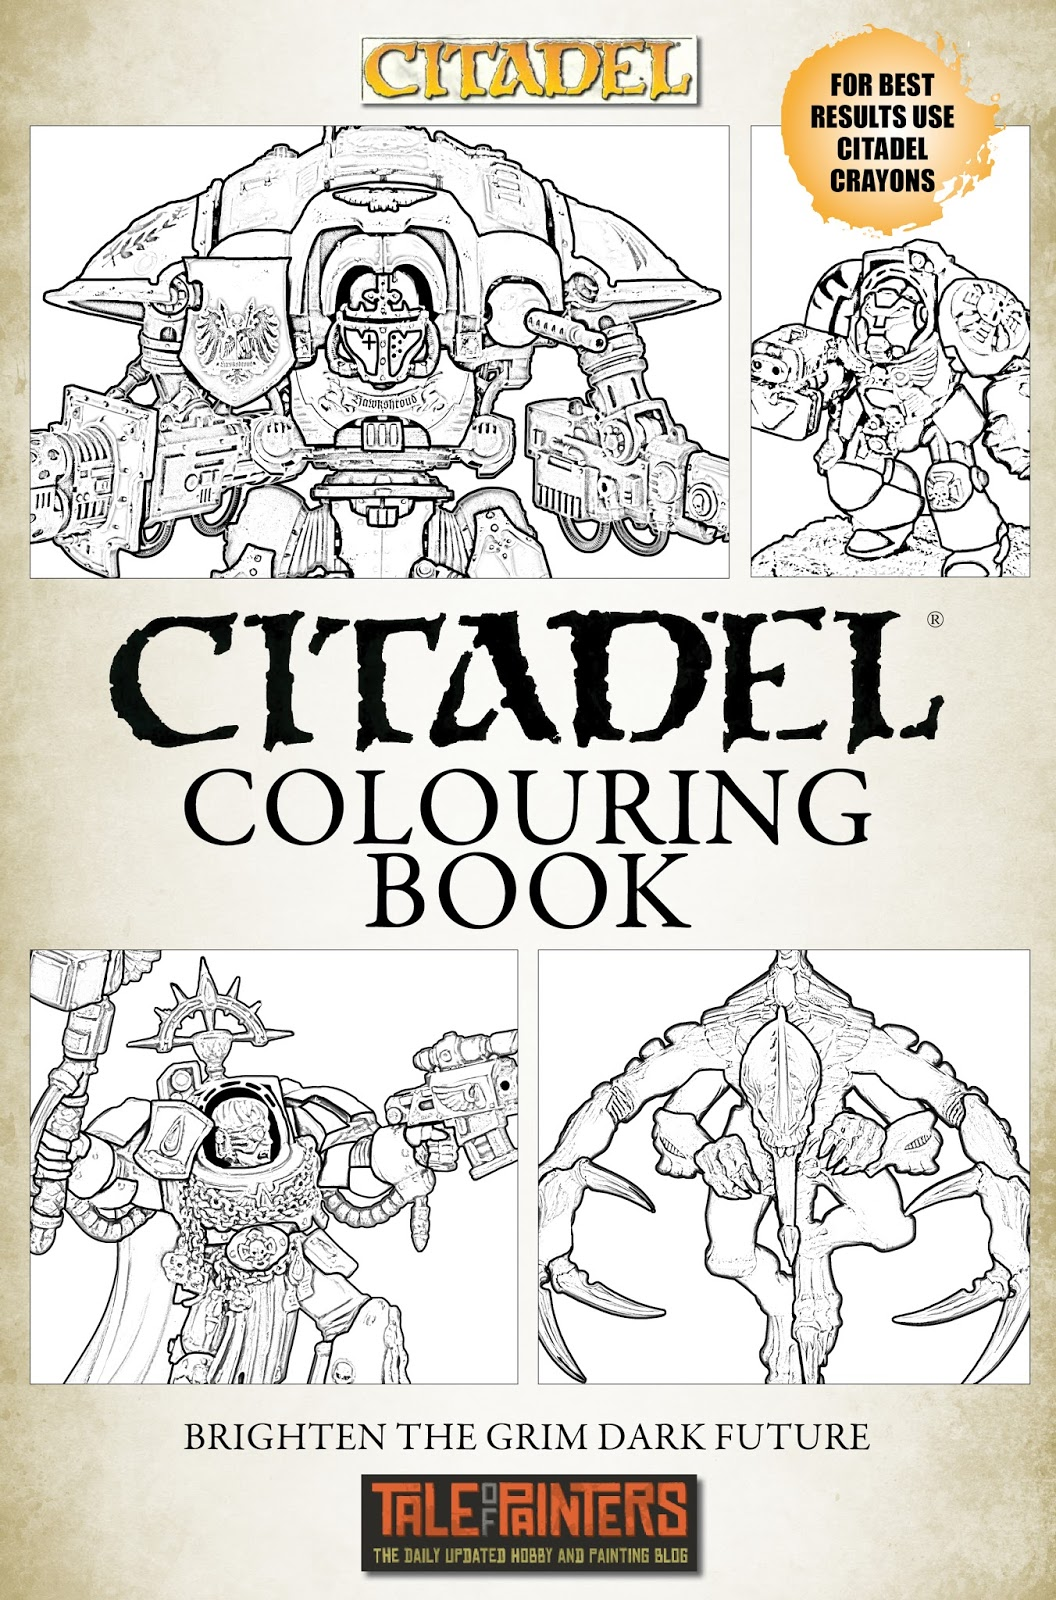 Rumour: Citadel Colouring Book Leaked Cover - Tale of Painters